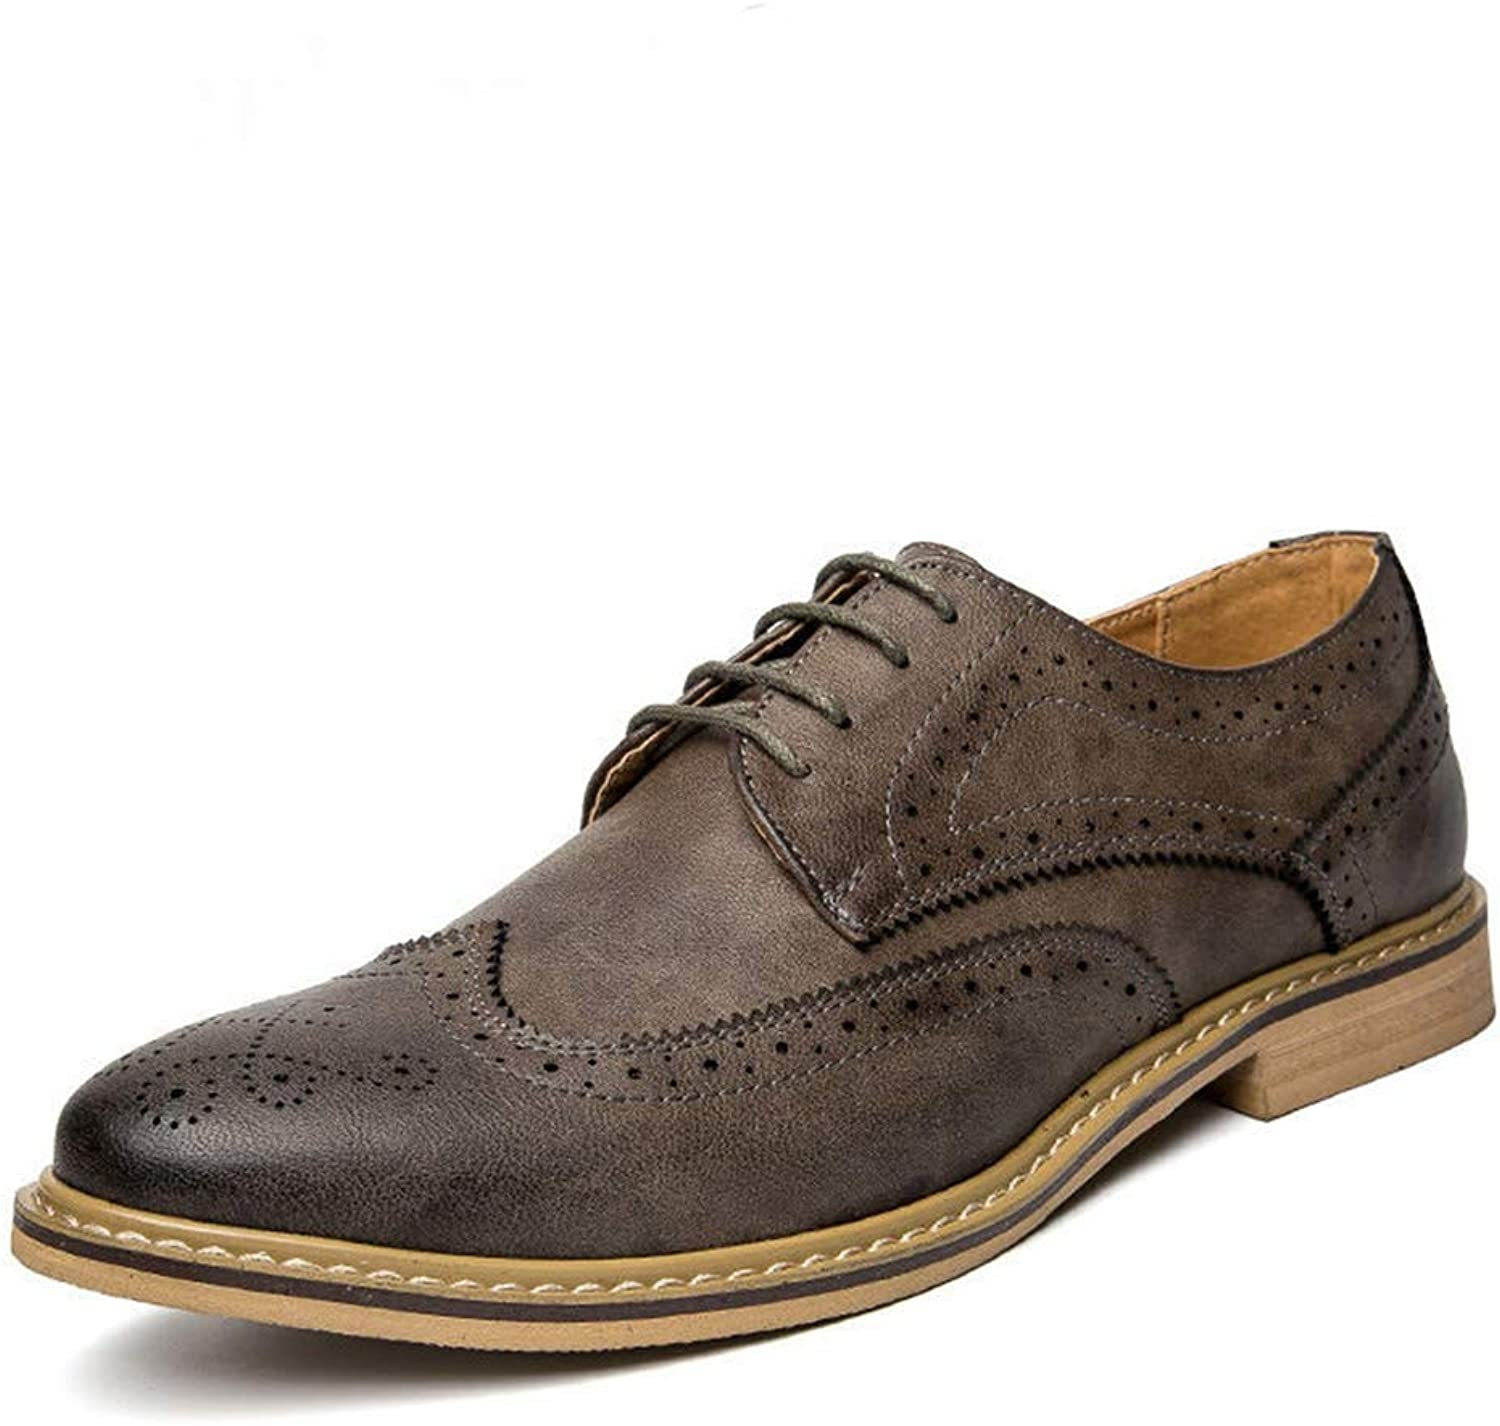 Men Oxfords Dress shoes Leather Brogue Mens Flats shoes Casual British Style for Men